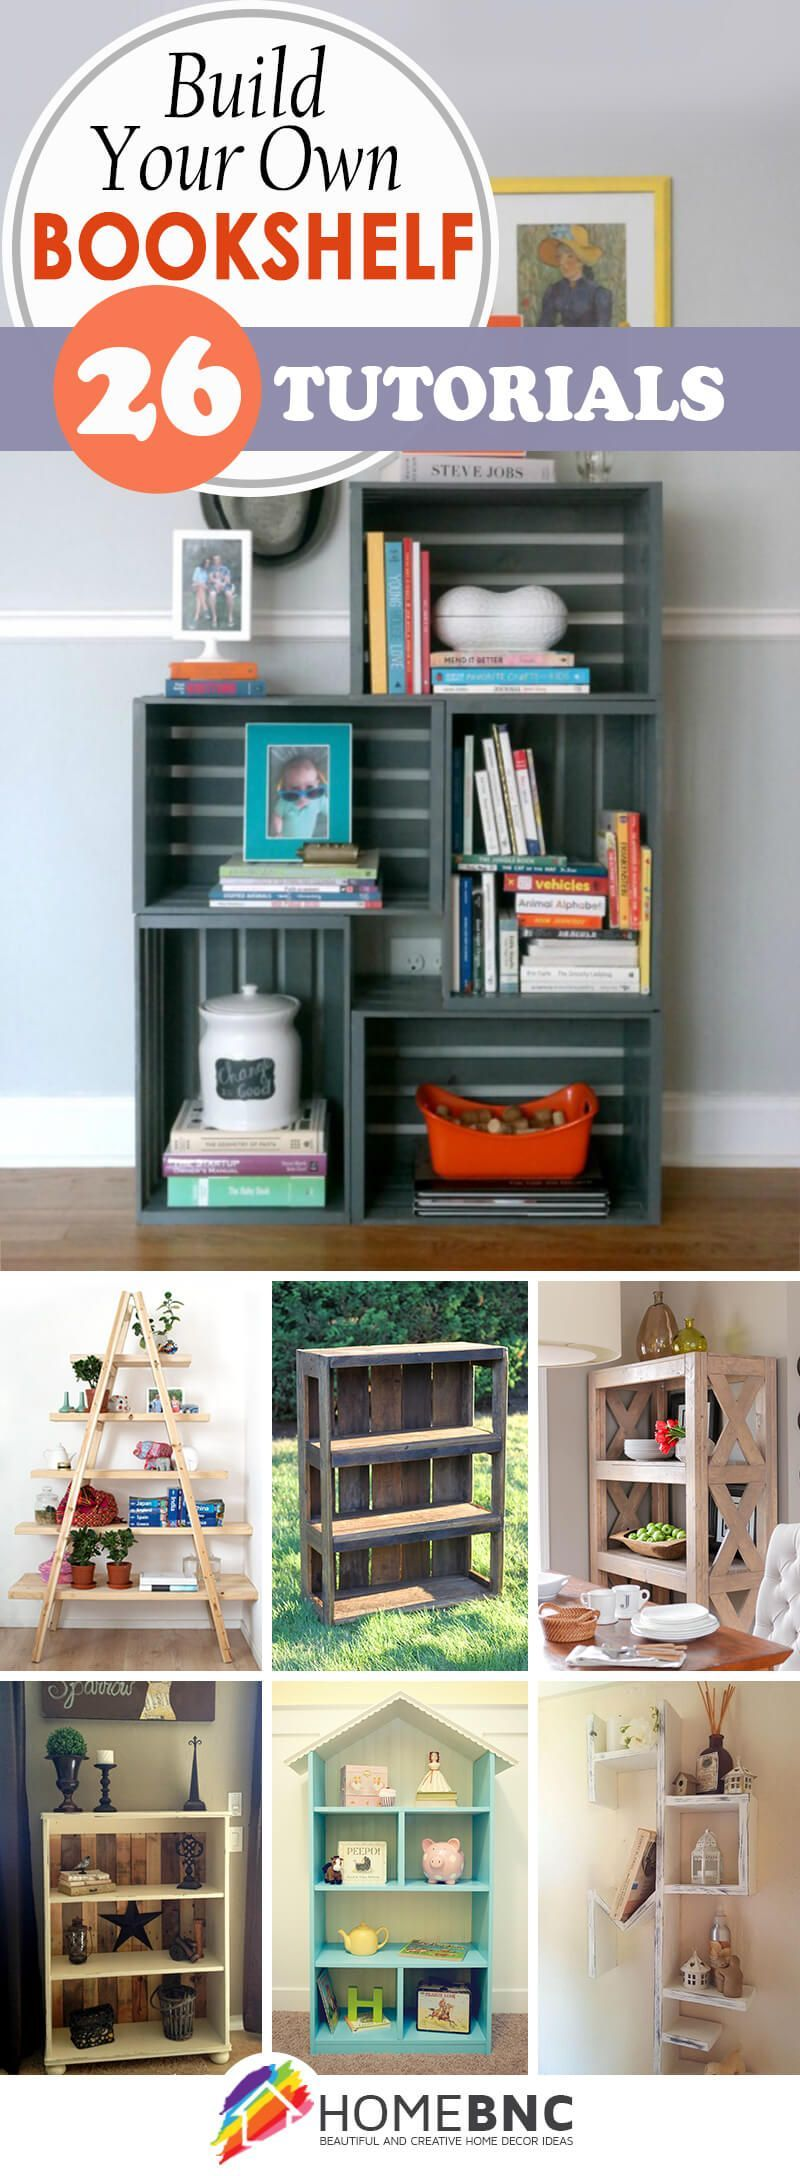 26 Trendy DIY Bookshelf Ideas that make optimal use of the space in your home  home decors  26 Trendy DIY Bookshelf Ideas that make the most of the space in your home